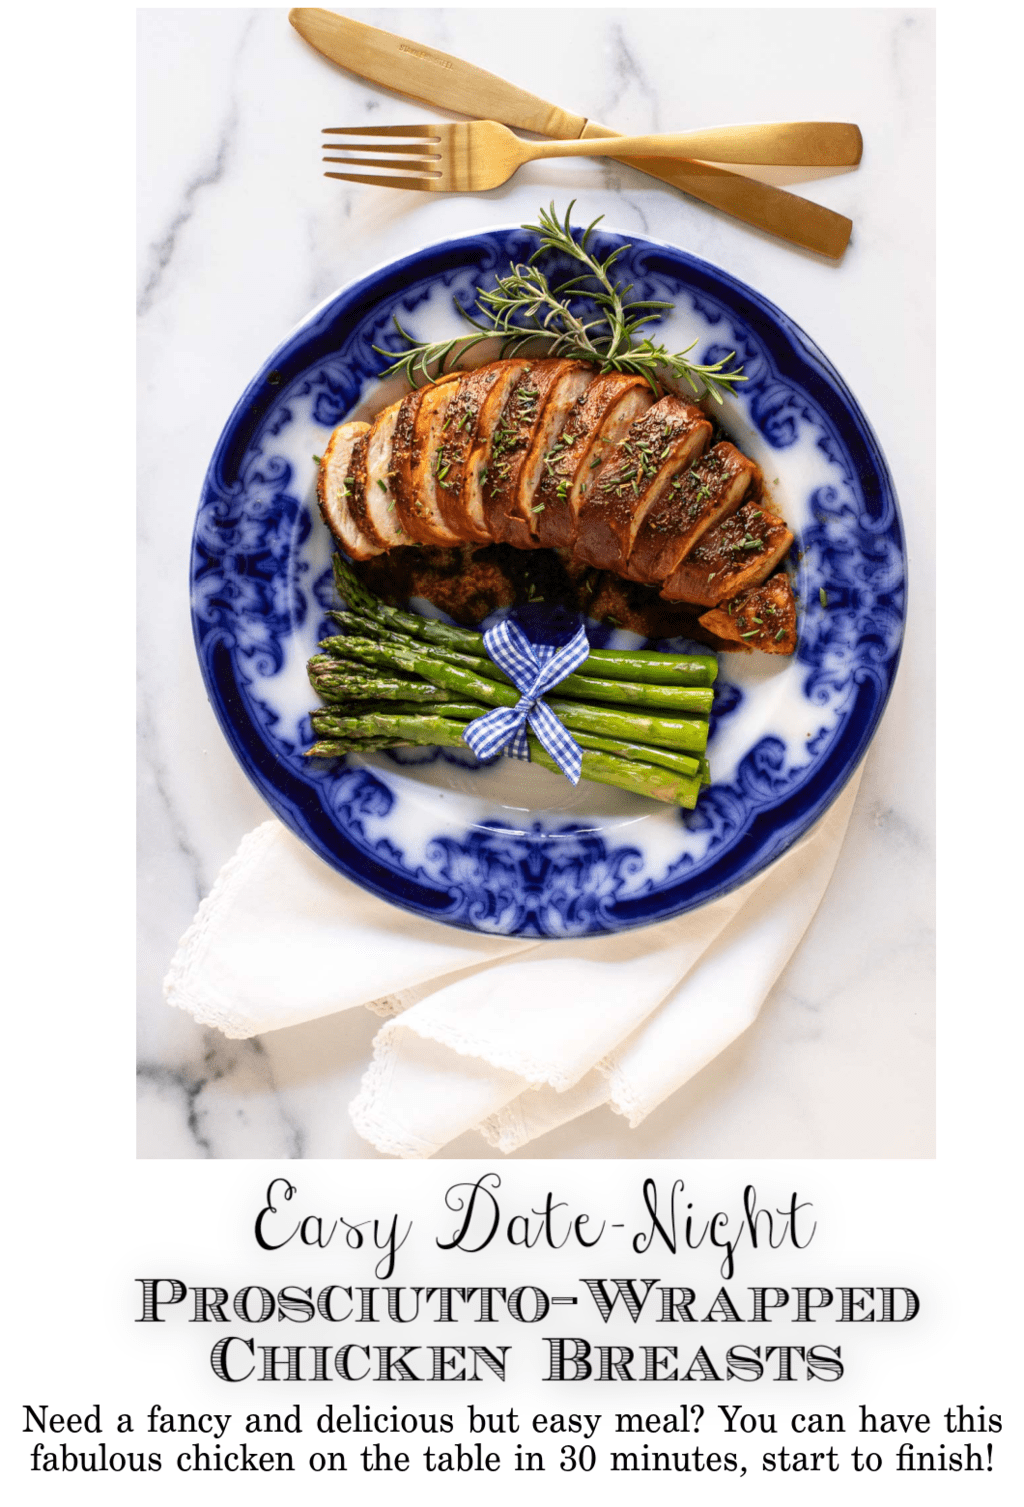 Easy Date-Night Prosciutto-Wrapped Chicken Breasts